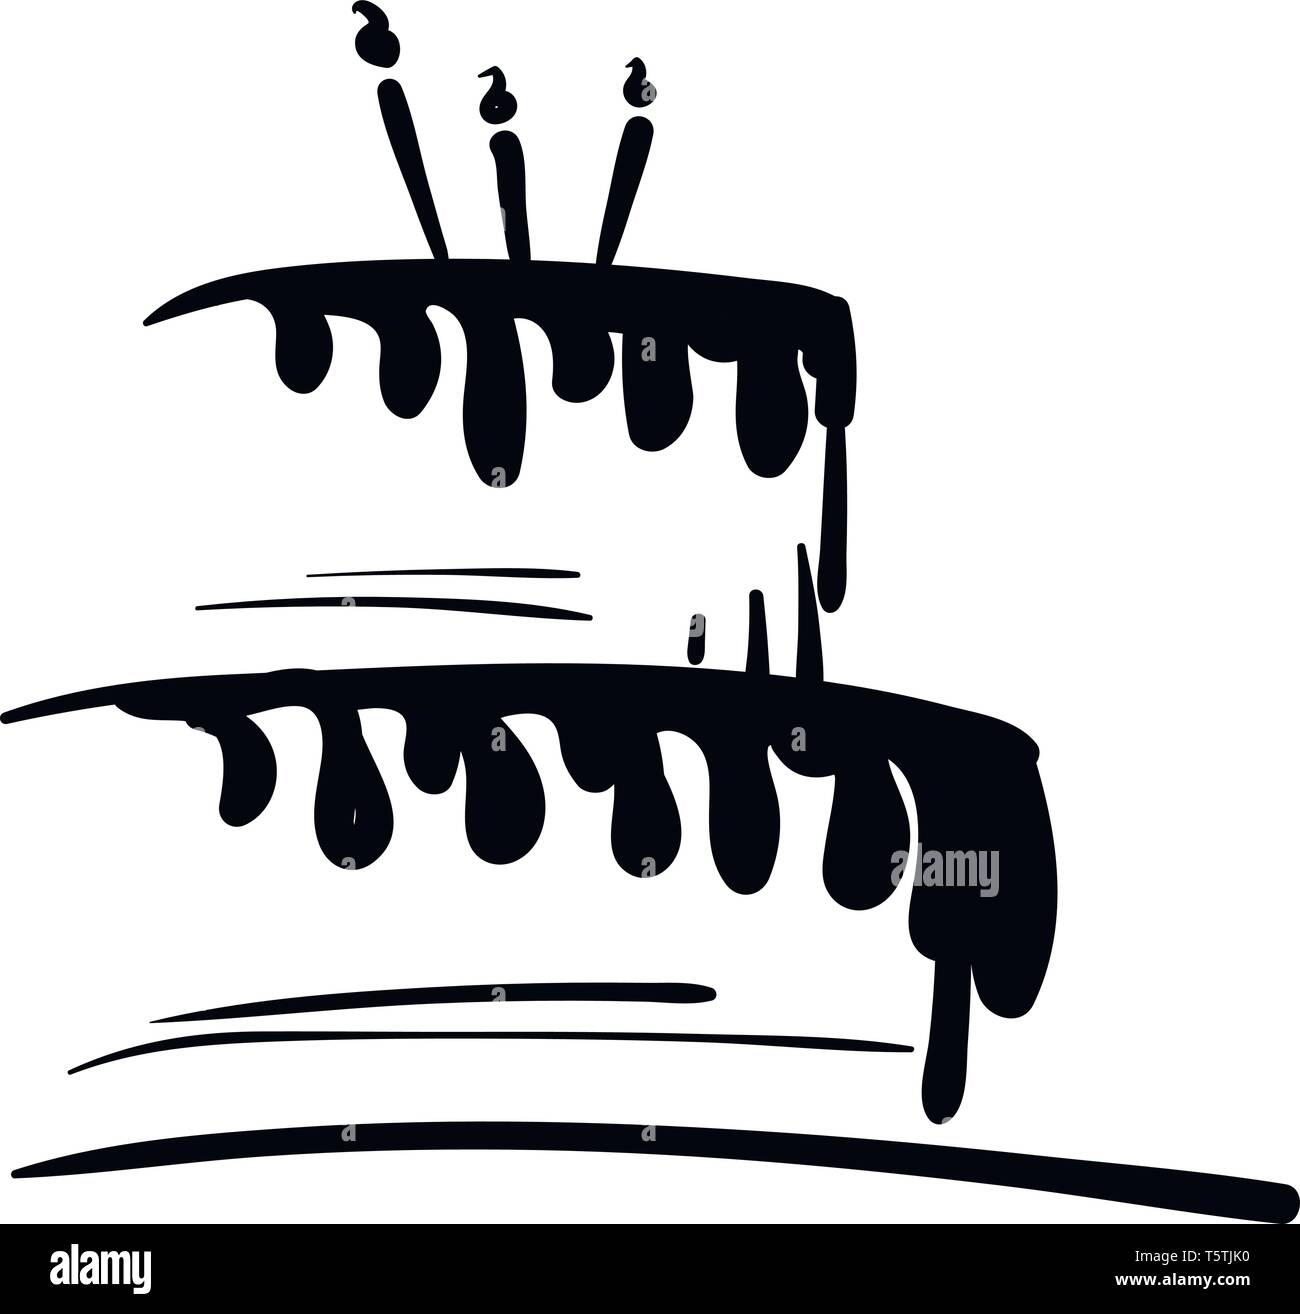 Swell Black And White Birthday Cake Vector Or Color Illustration Stock Funny Birthday Cards Online Elaedamsfinfo